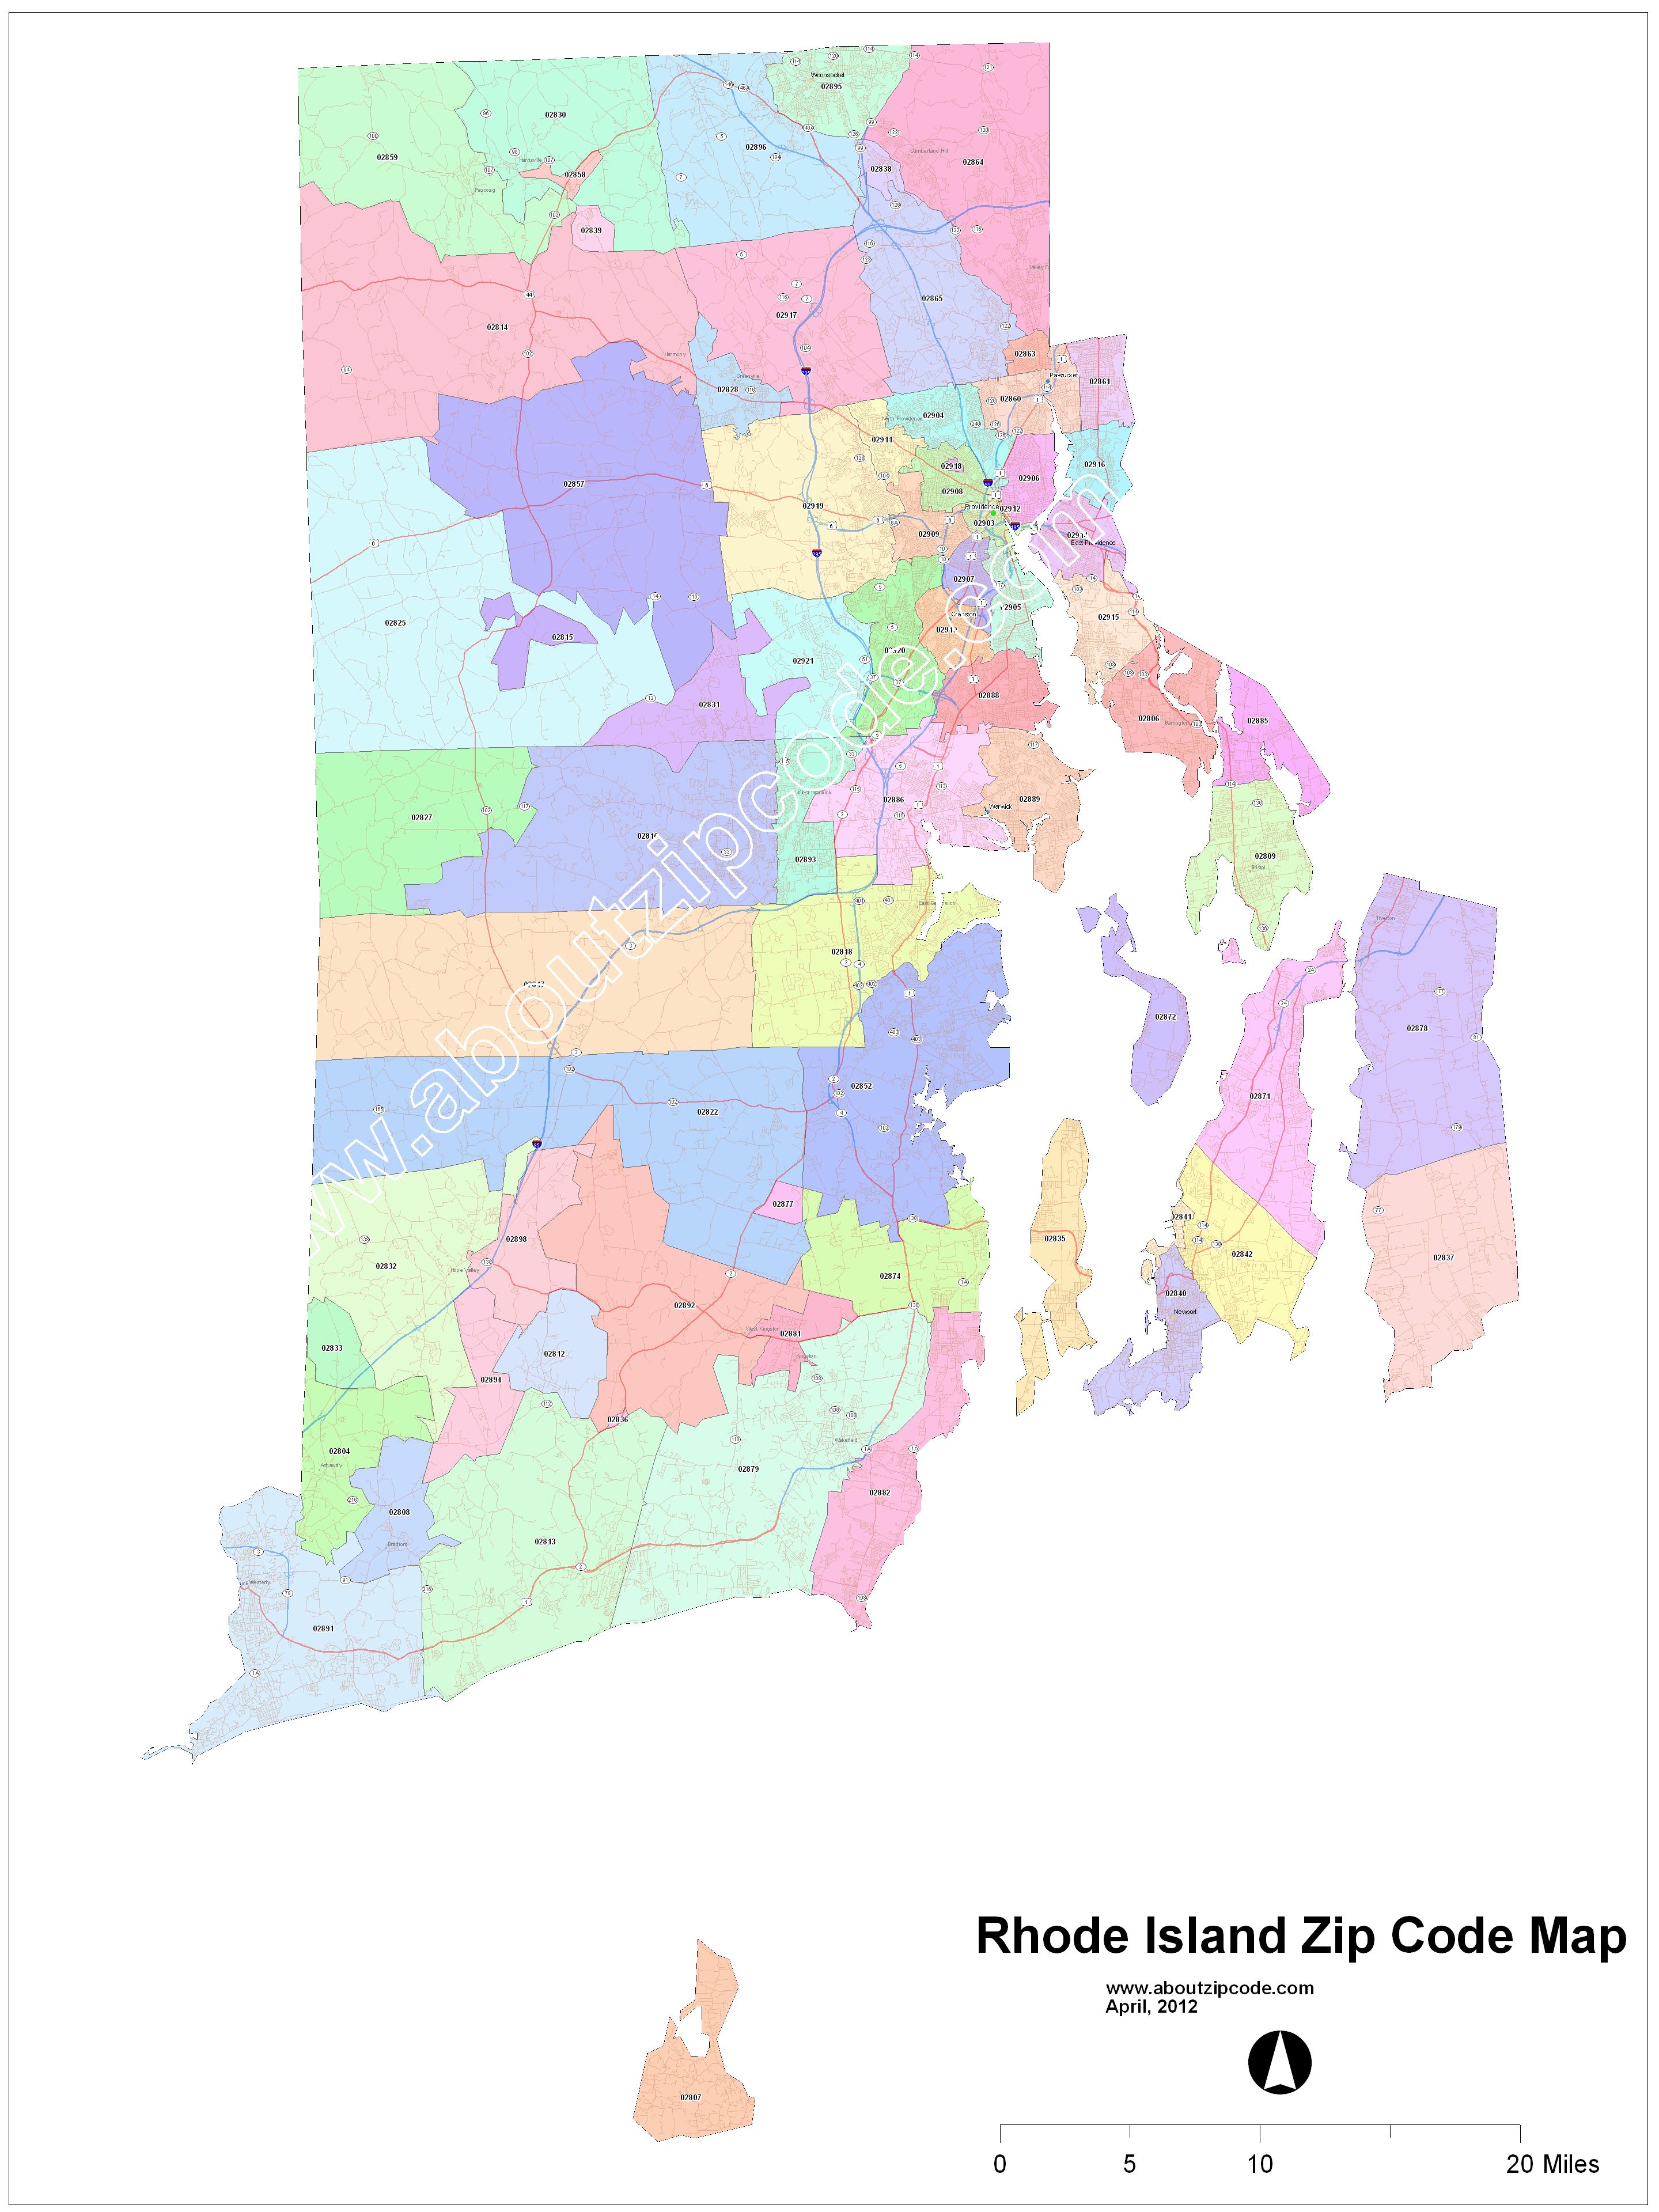 Rhode Island Zip Code Maps - Free Rhode Island Zip Code Maps on